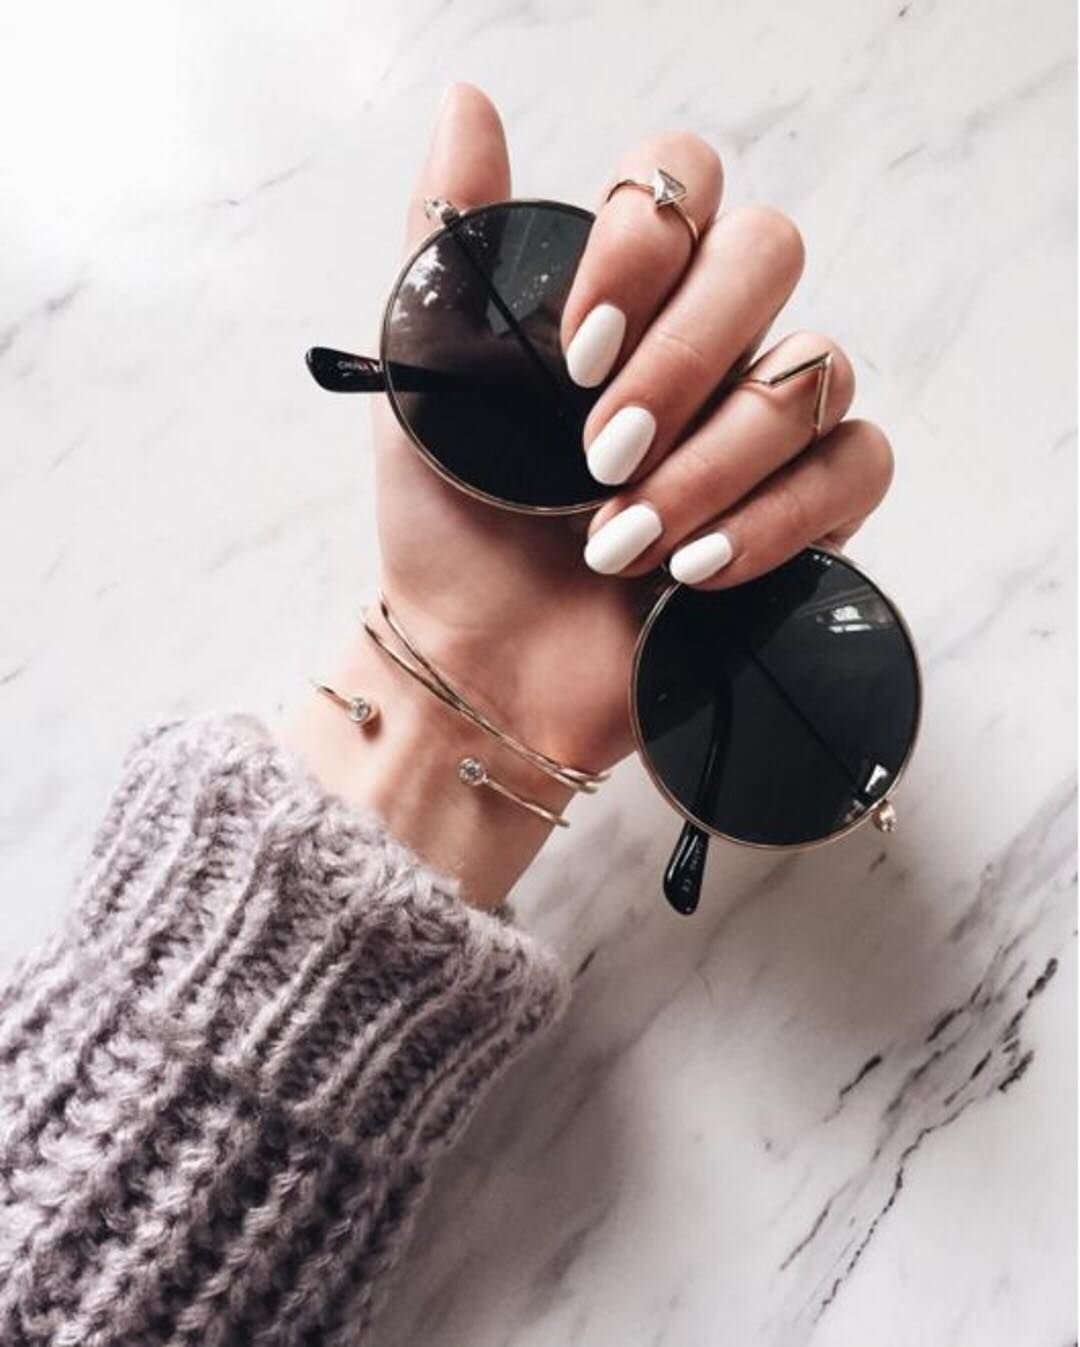 Shining so bright we need our shades  _______________________  #shopwhoyouare #instafashion #ootd #jewelry#accessories #instagood #inspiration#details #outfit #chic #fashiondaily #fashionable #fashionista #styleinspo#style #styleblog #stylegram#styleblogger #fashiondiaries#styleinspiration #fashiongram #sparkle